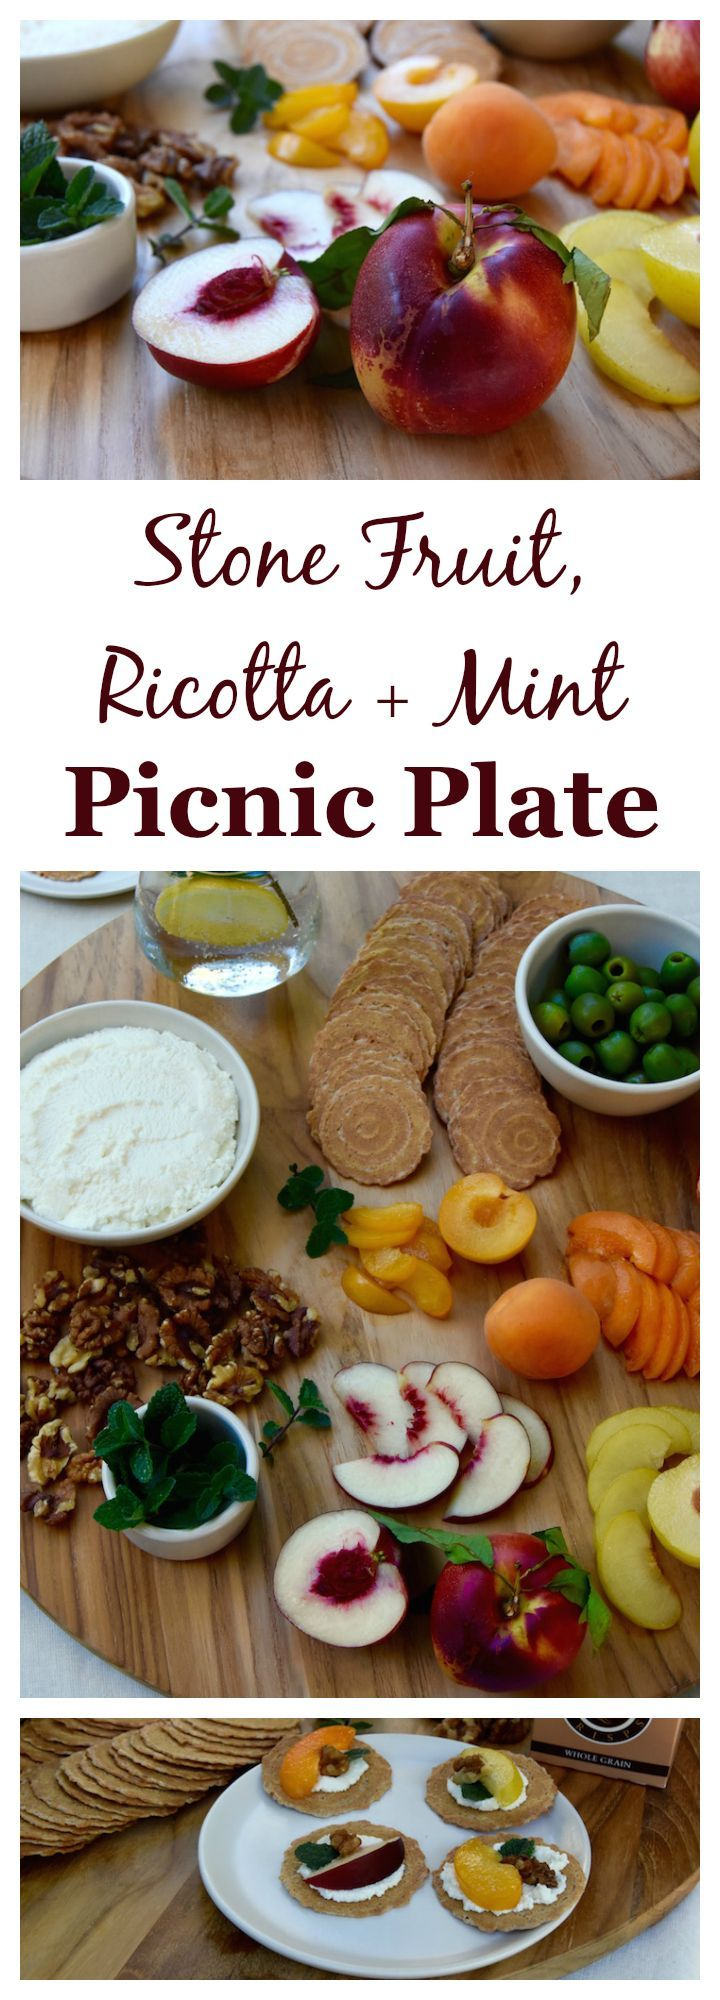 A simple combination of summer flavors, this Stone Fruit, Ricotta and Mint Picnic Plate is perfect for get togethers this summer. (ad)   uprootkitchen.com